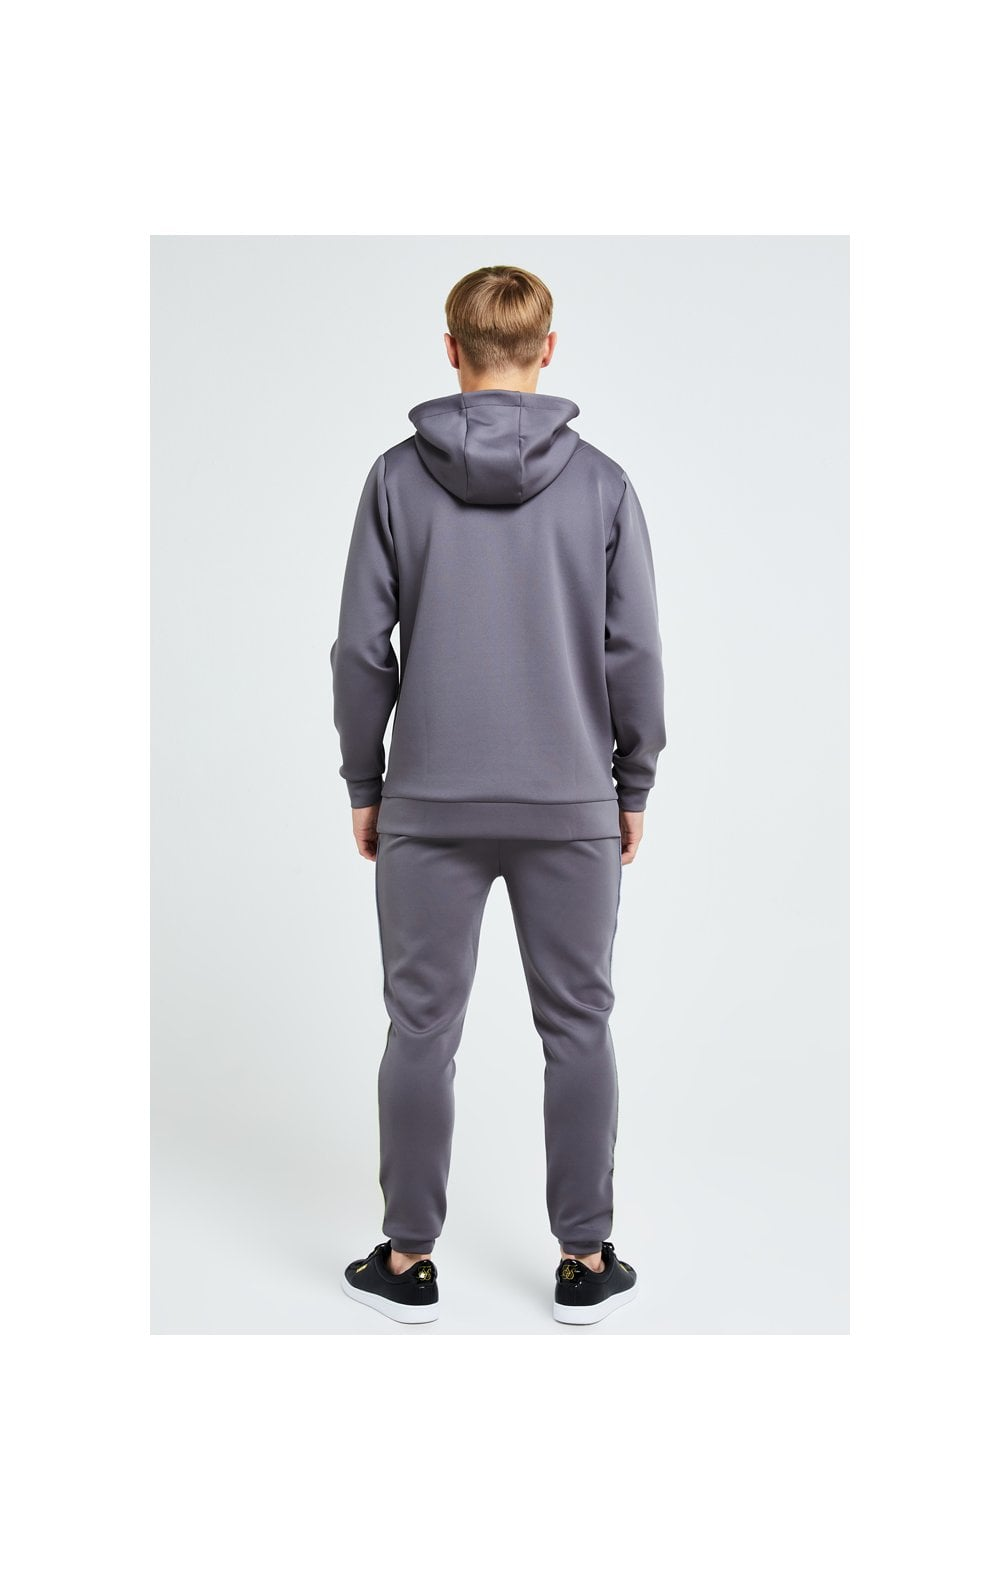 Load image into Gallery viewer, Illusive London Blaze Overhead Hoodie - Dark Grey & Lime (5)